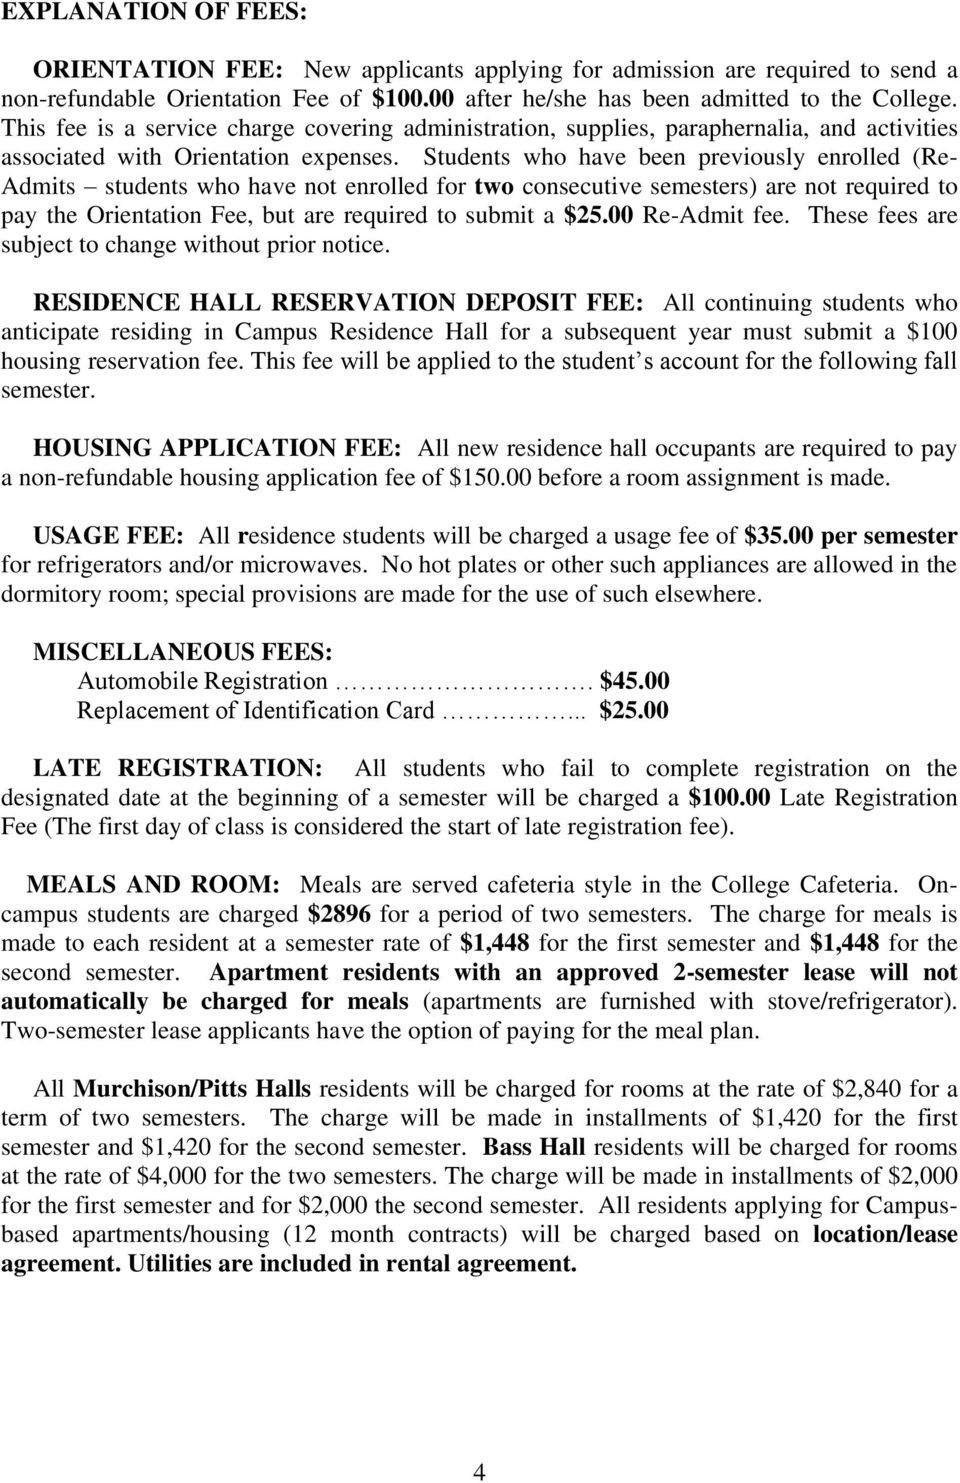 Students who have been previously enrolled (Re- Admits students who have not enrolled for two consecutive semesters) are not required to pay the Orientation Fee, but are required to submit a $25.